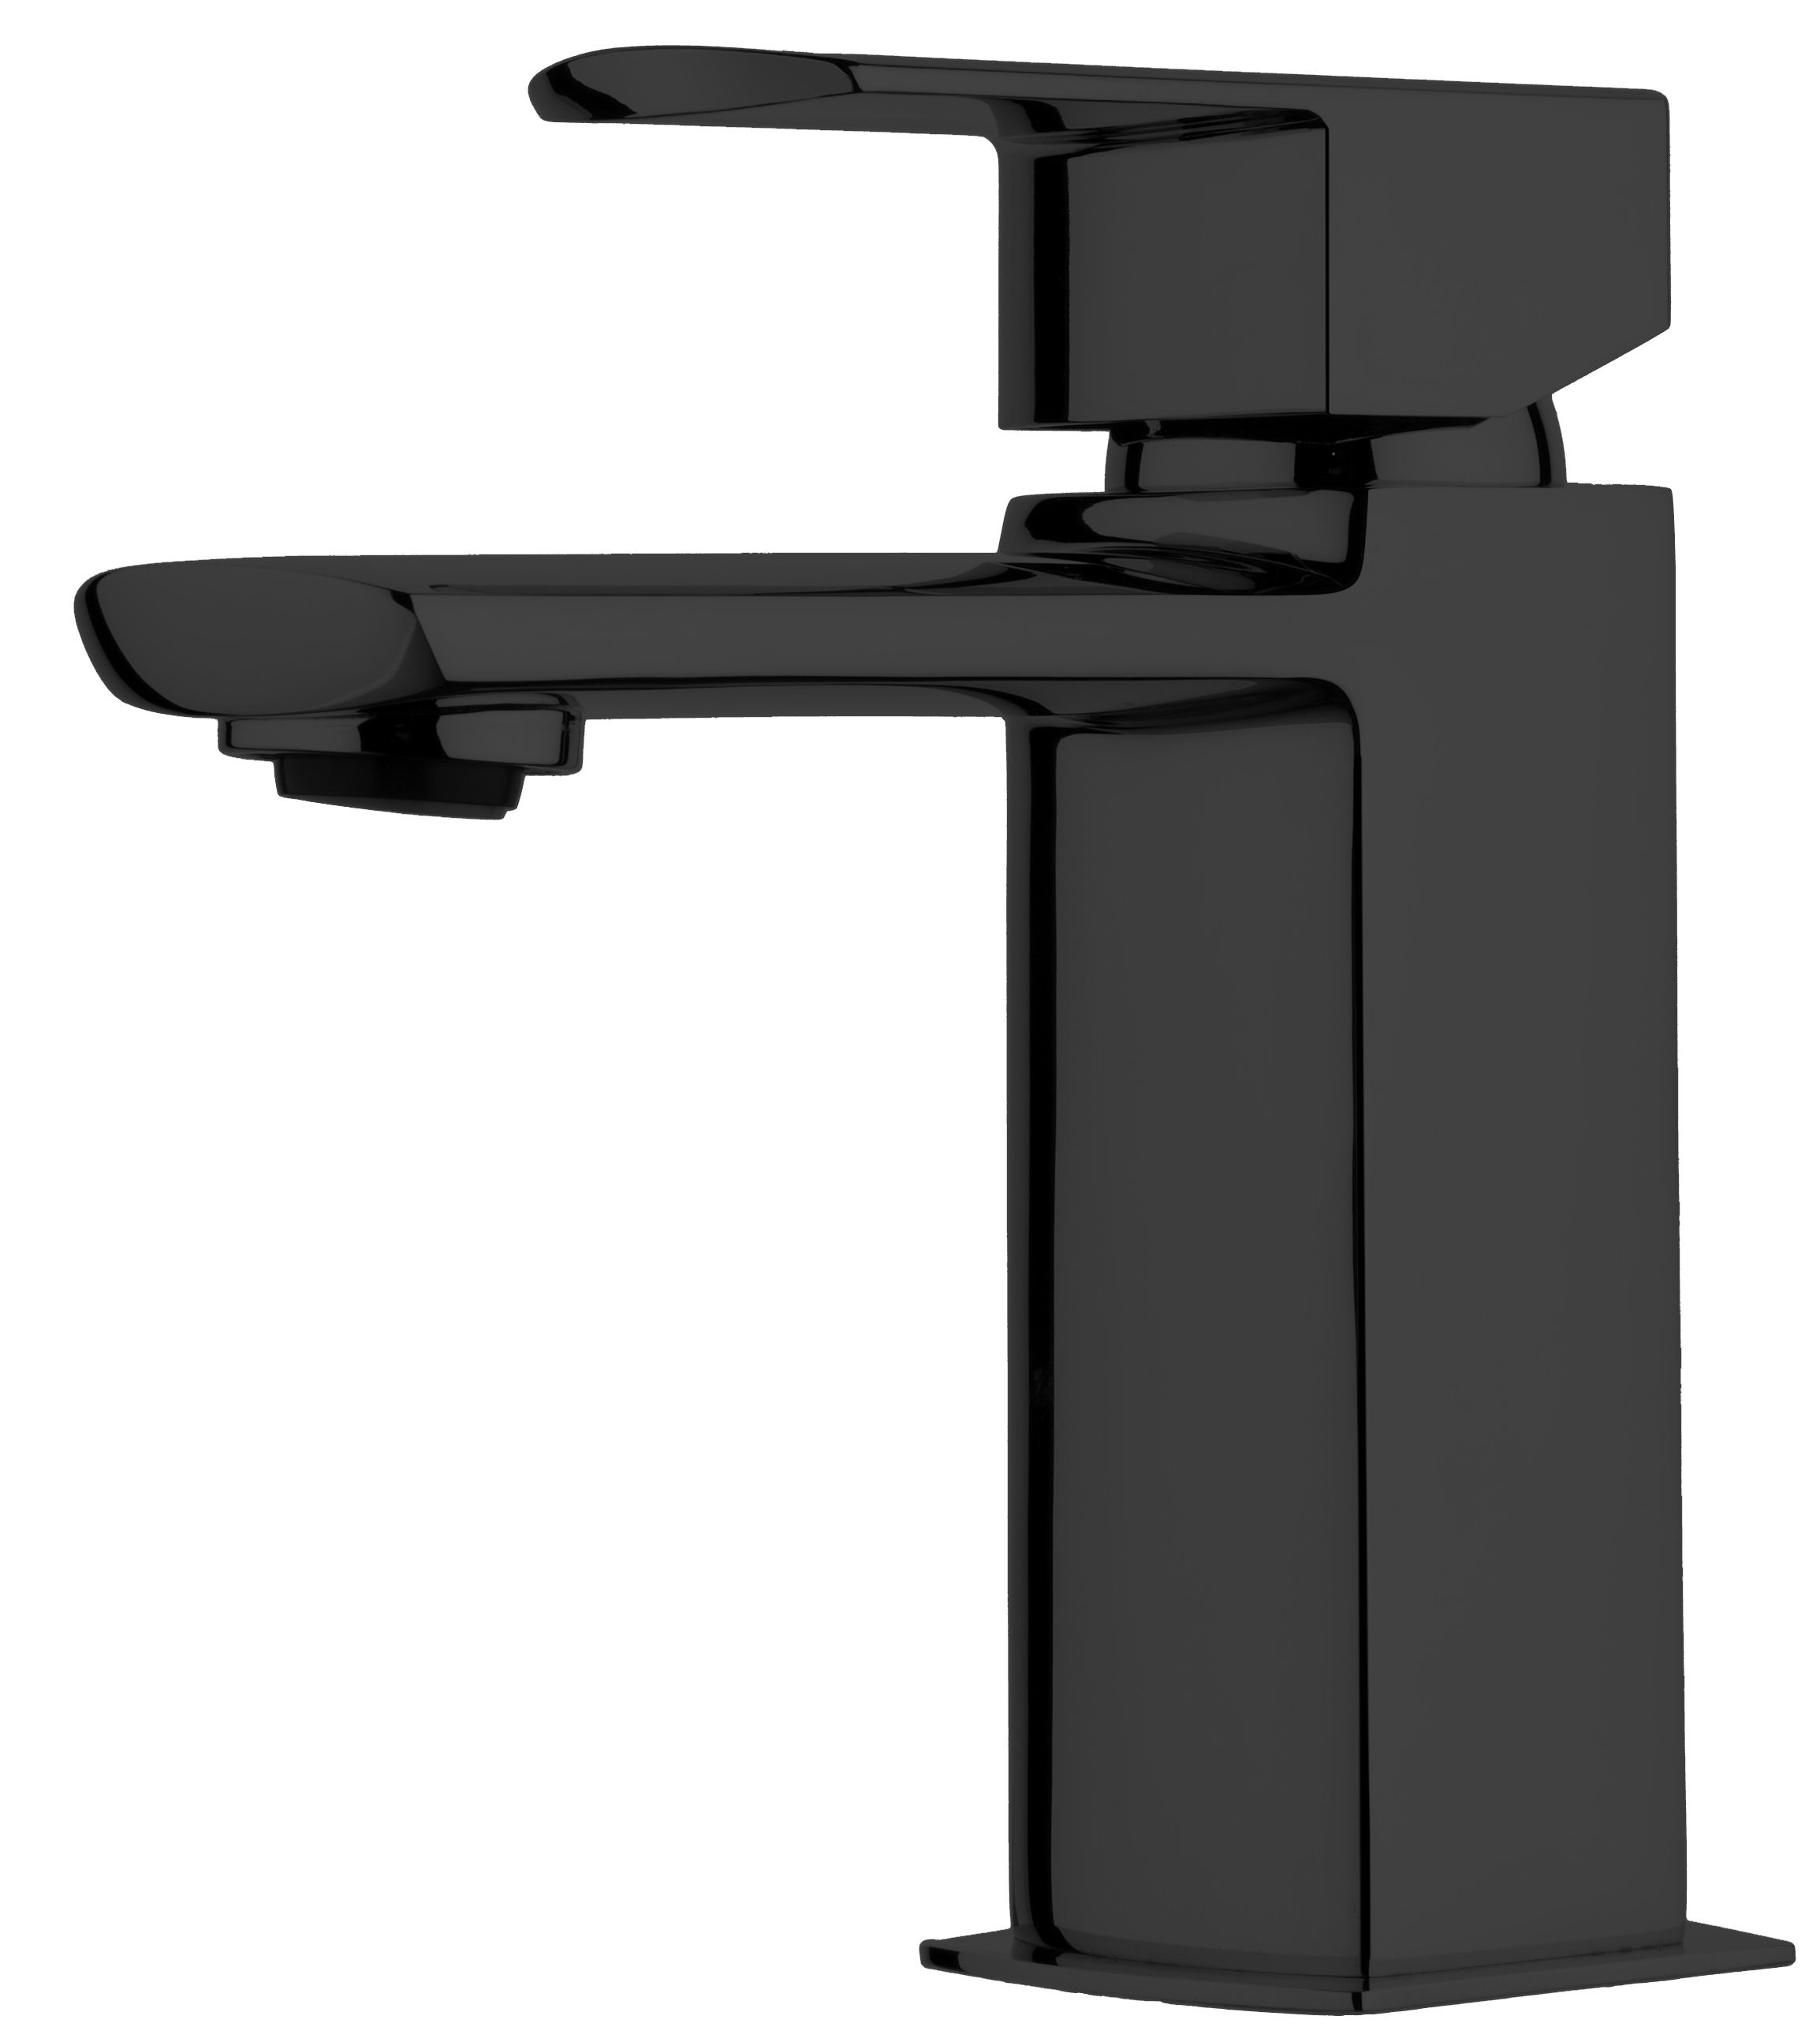 Bunnings Bathroom Vanity Sprint Black Basin Mixer Electroplated Finish Sbk020 Available